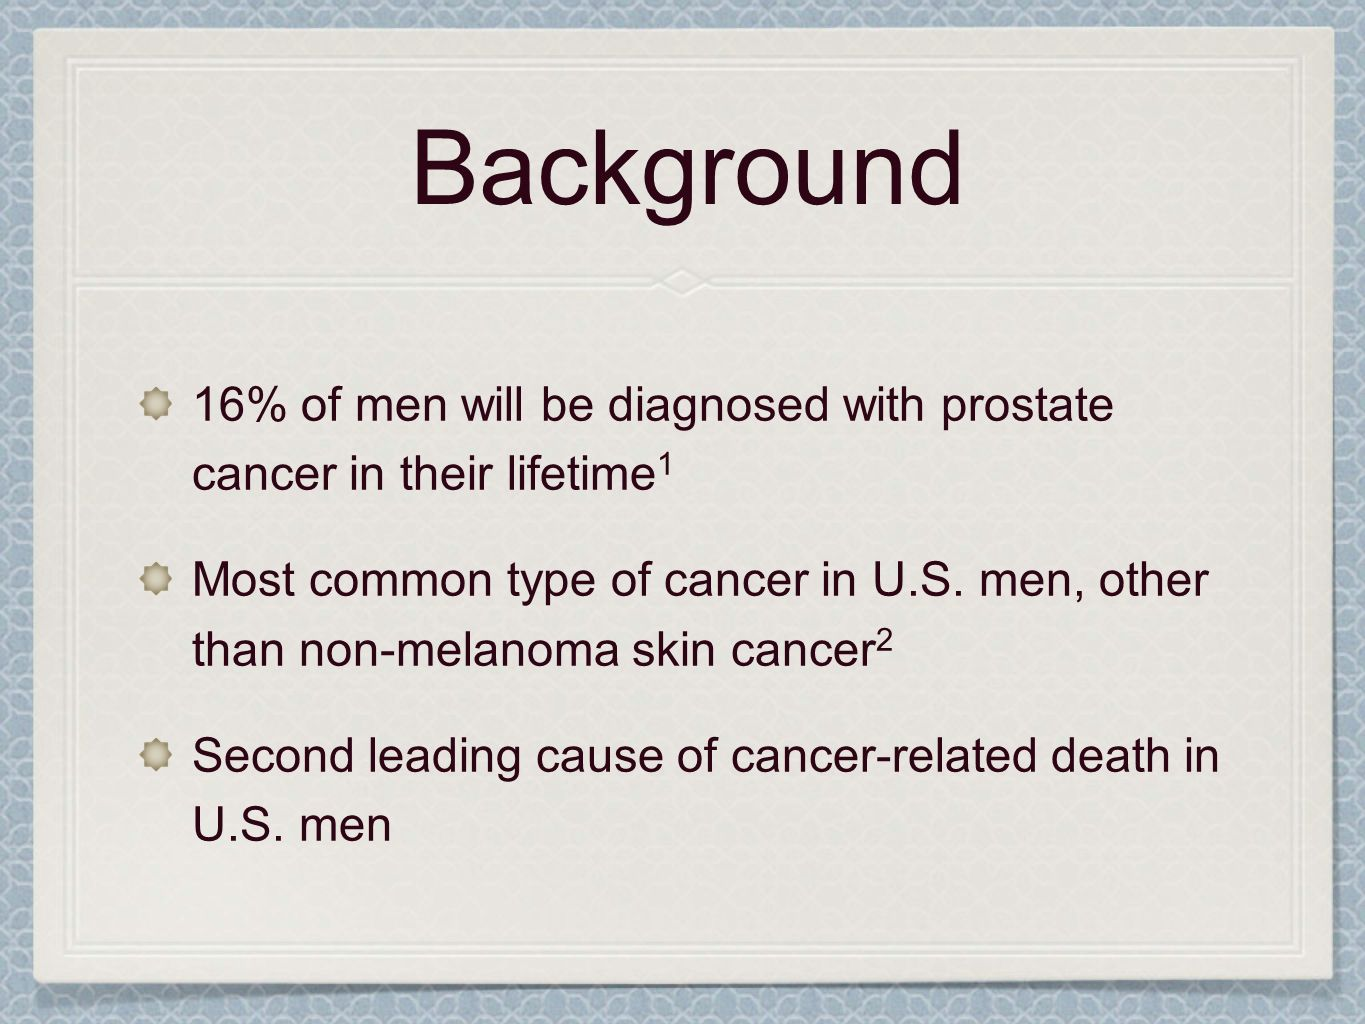 Background 16% of men will be diagnosed with prostate cancer in their lifetime1.